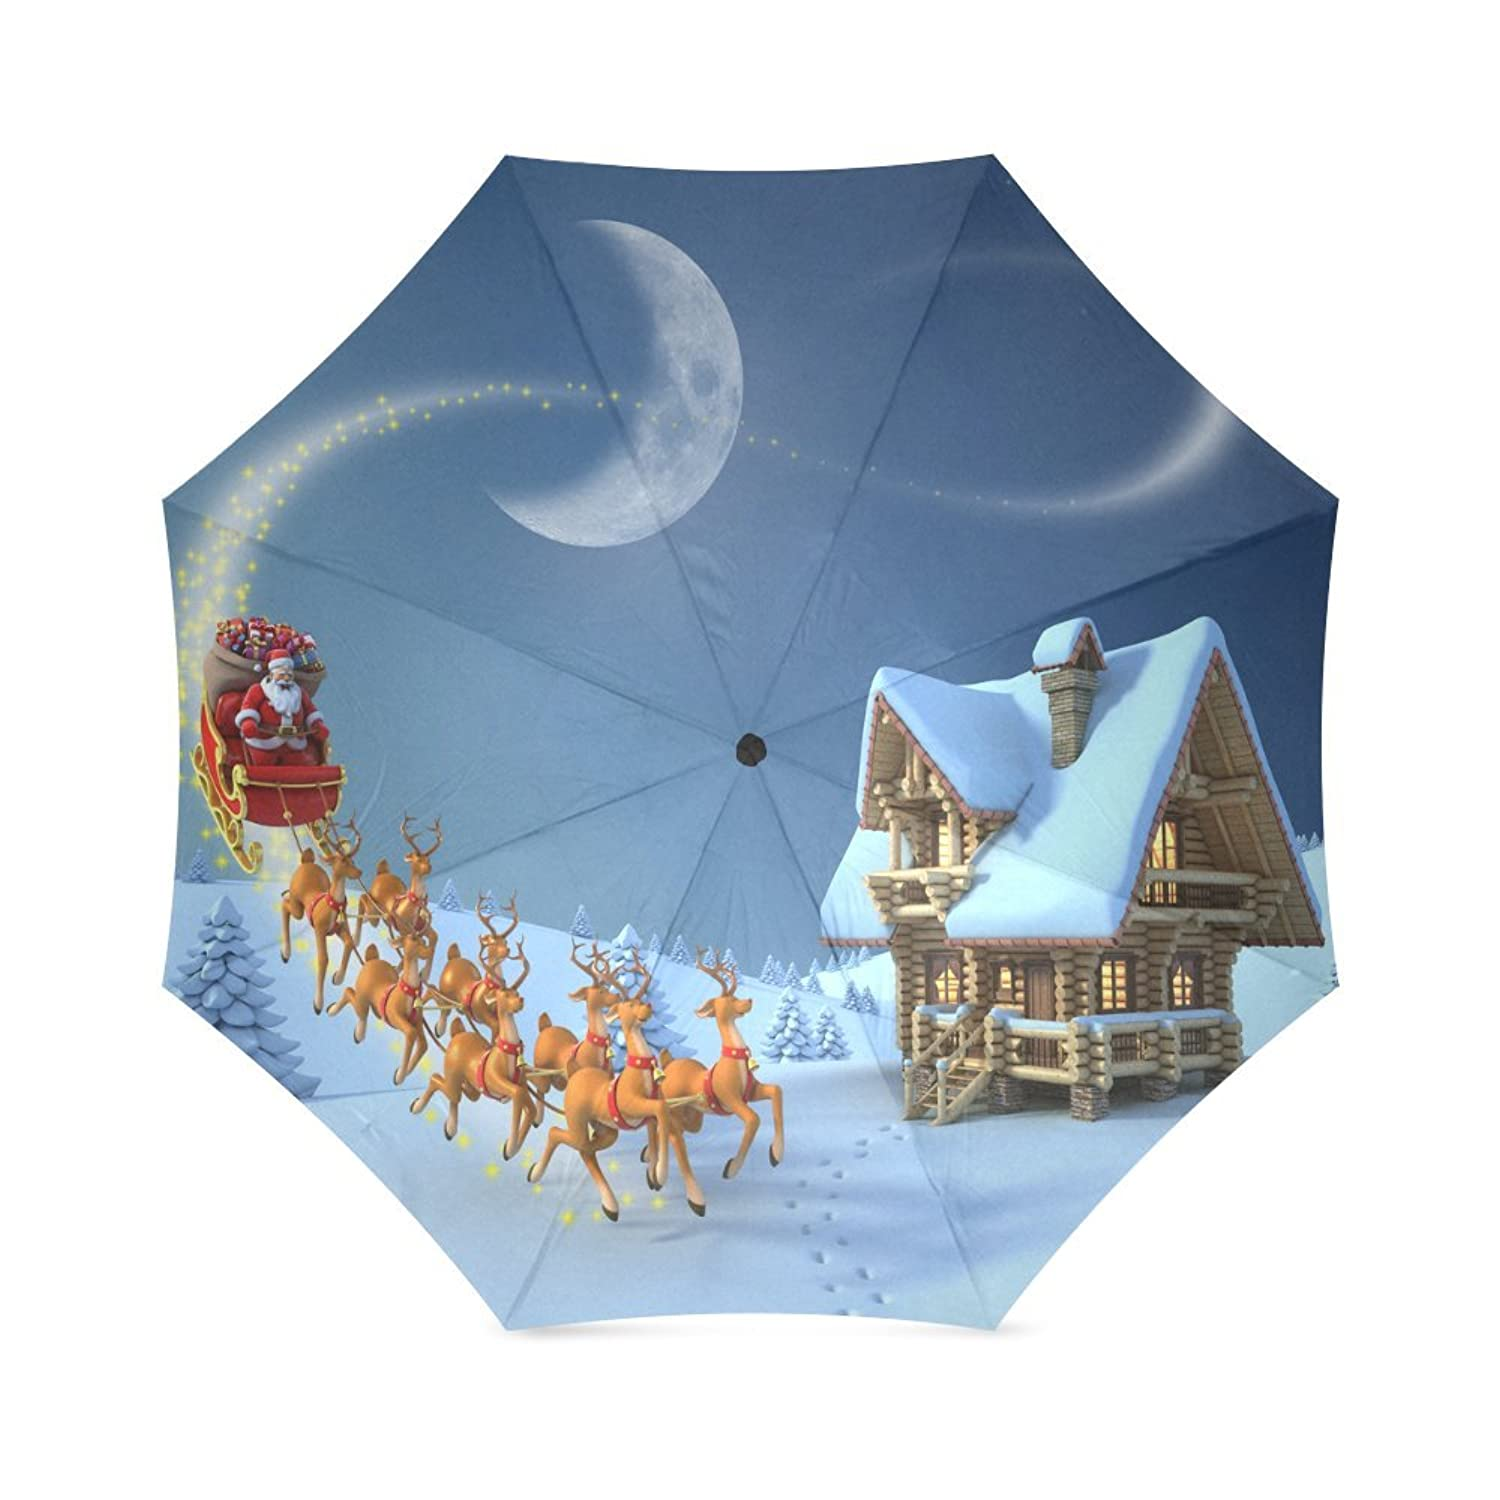 Amazon.com: Santa Claus and Reindeers Flying in the sky, Father Christmas Best Christmas Gift Folding Rain Umbrella/Parasol/Sun Umbrella: Clothing